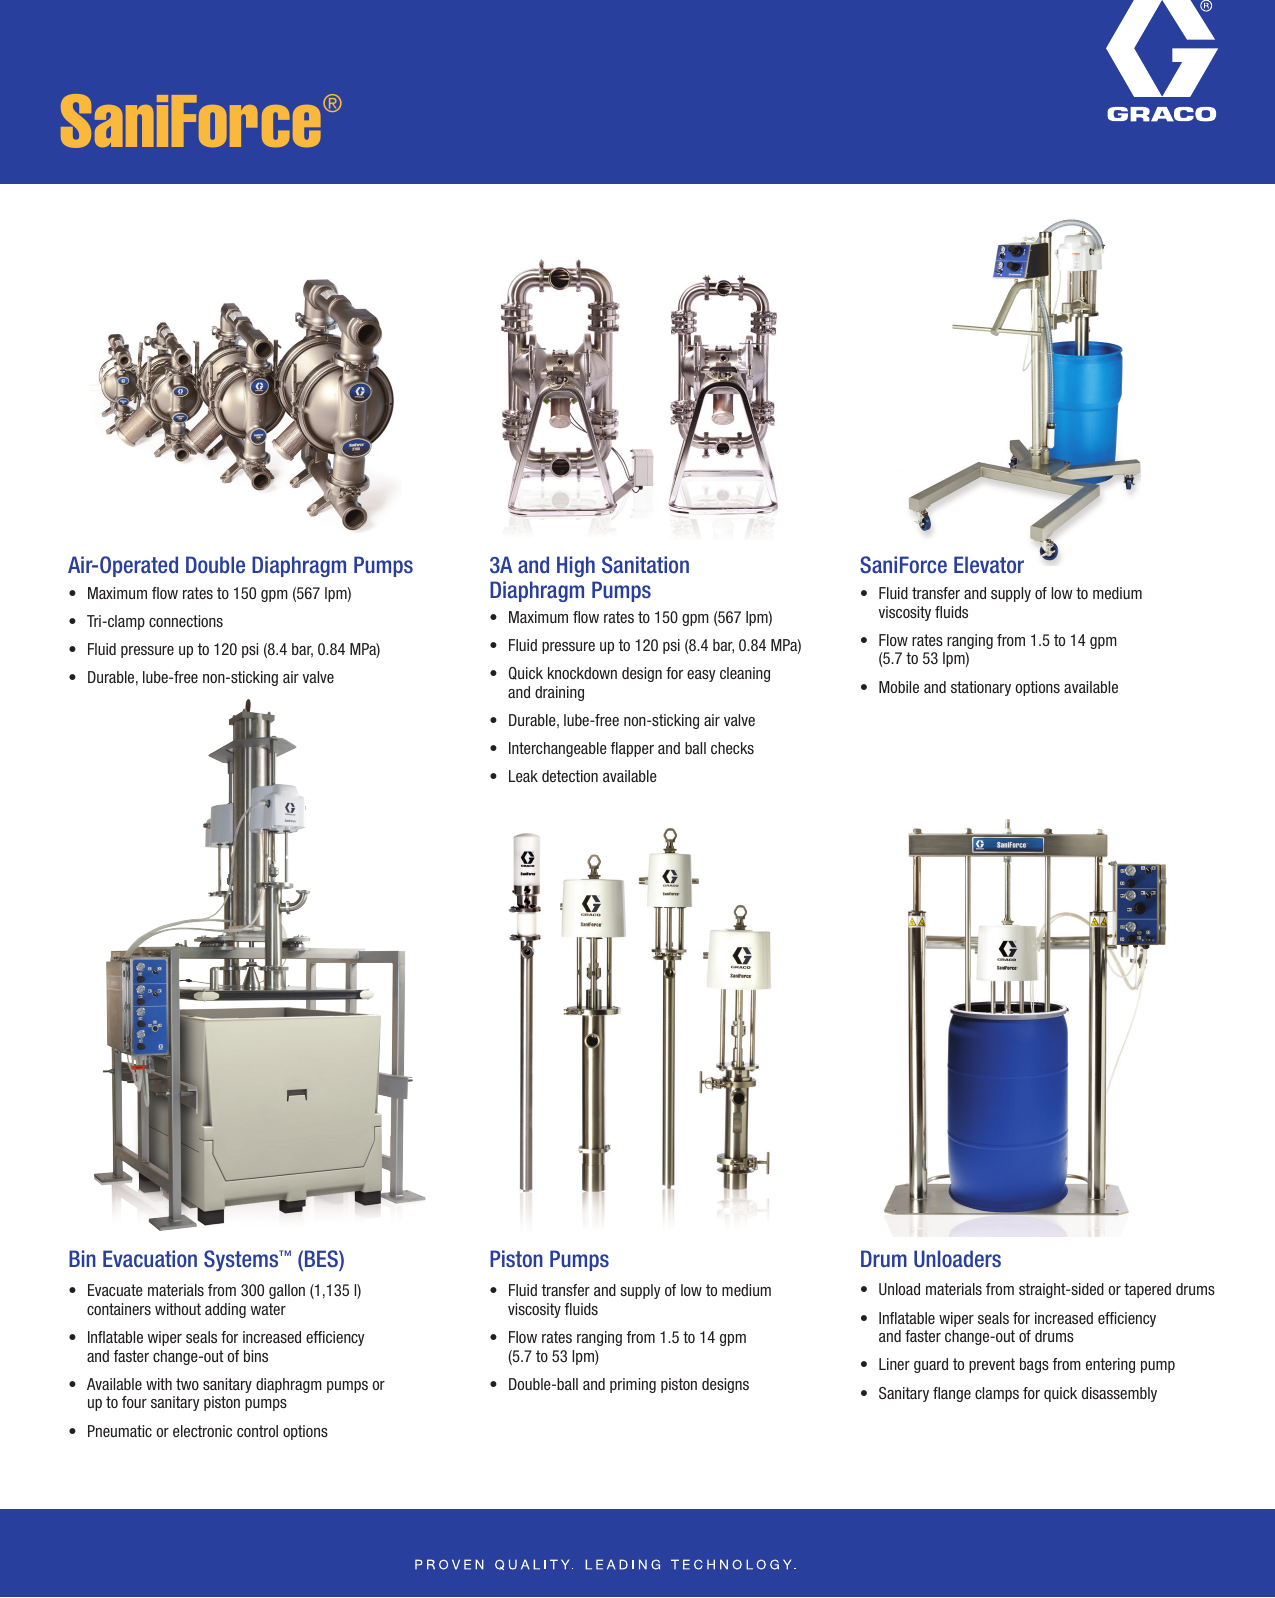 Graco 345067En A Users Manual Sanitary Overview Flyer